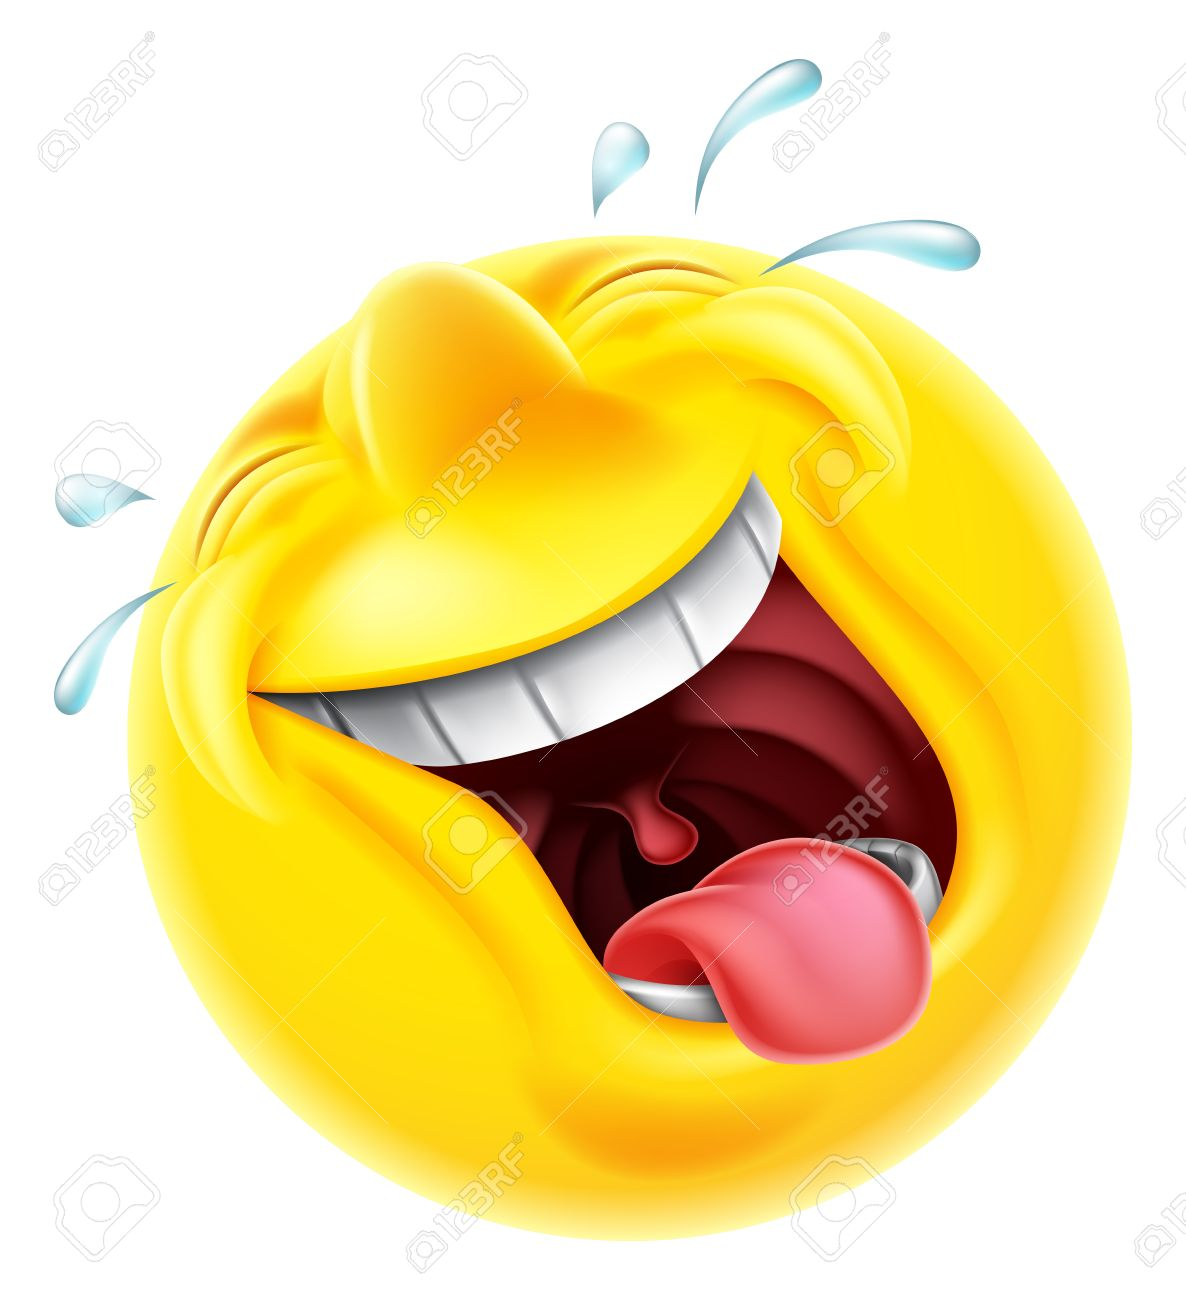 1186x1300 A Very Happy Laughing Emoji Emoticon Smiley Face Character